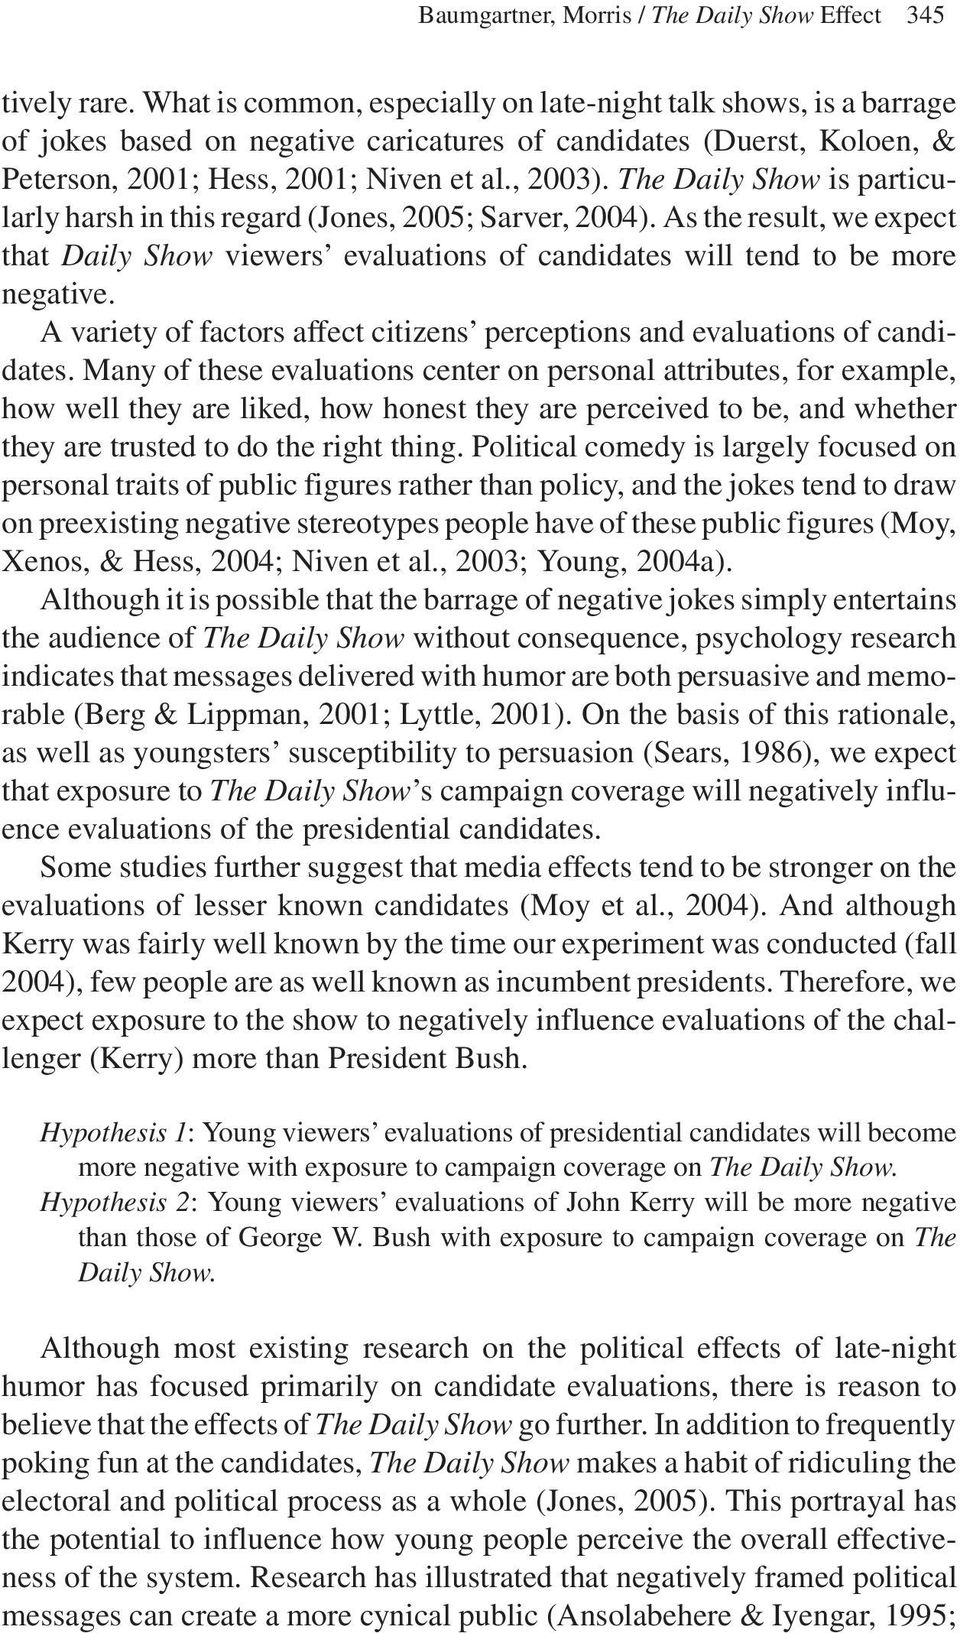 The Daily Show is particularly harsh in this regard (Jones, 2005; Sarver, 2004). As the result, we expect that Daily Show viewers evaluations of candidates will tend to be more negative.